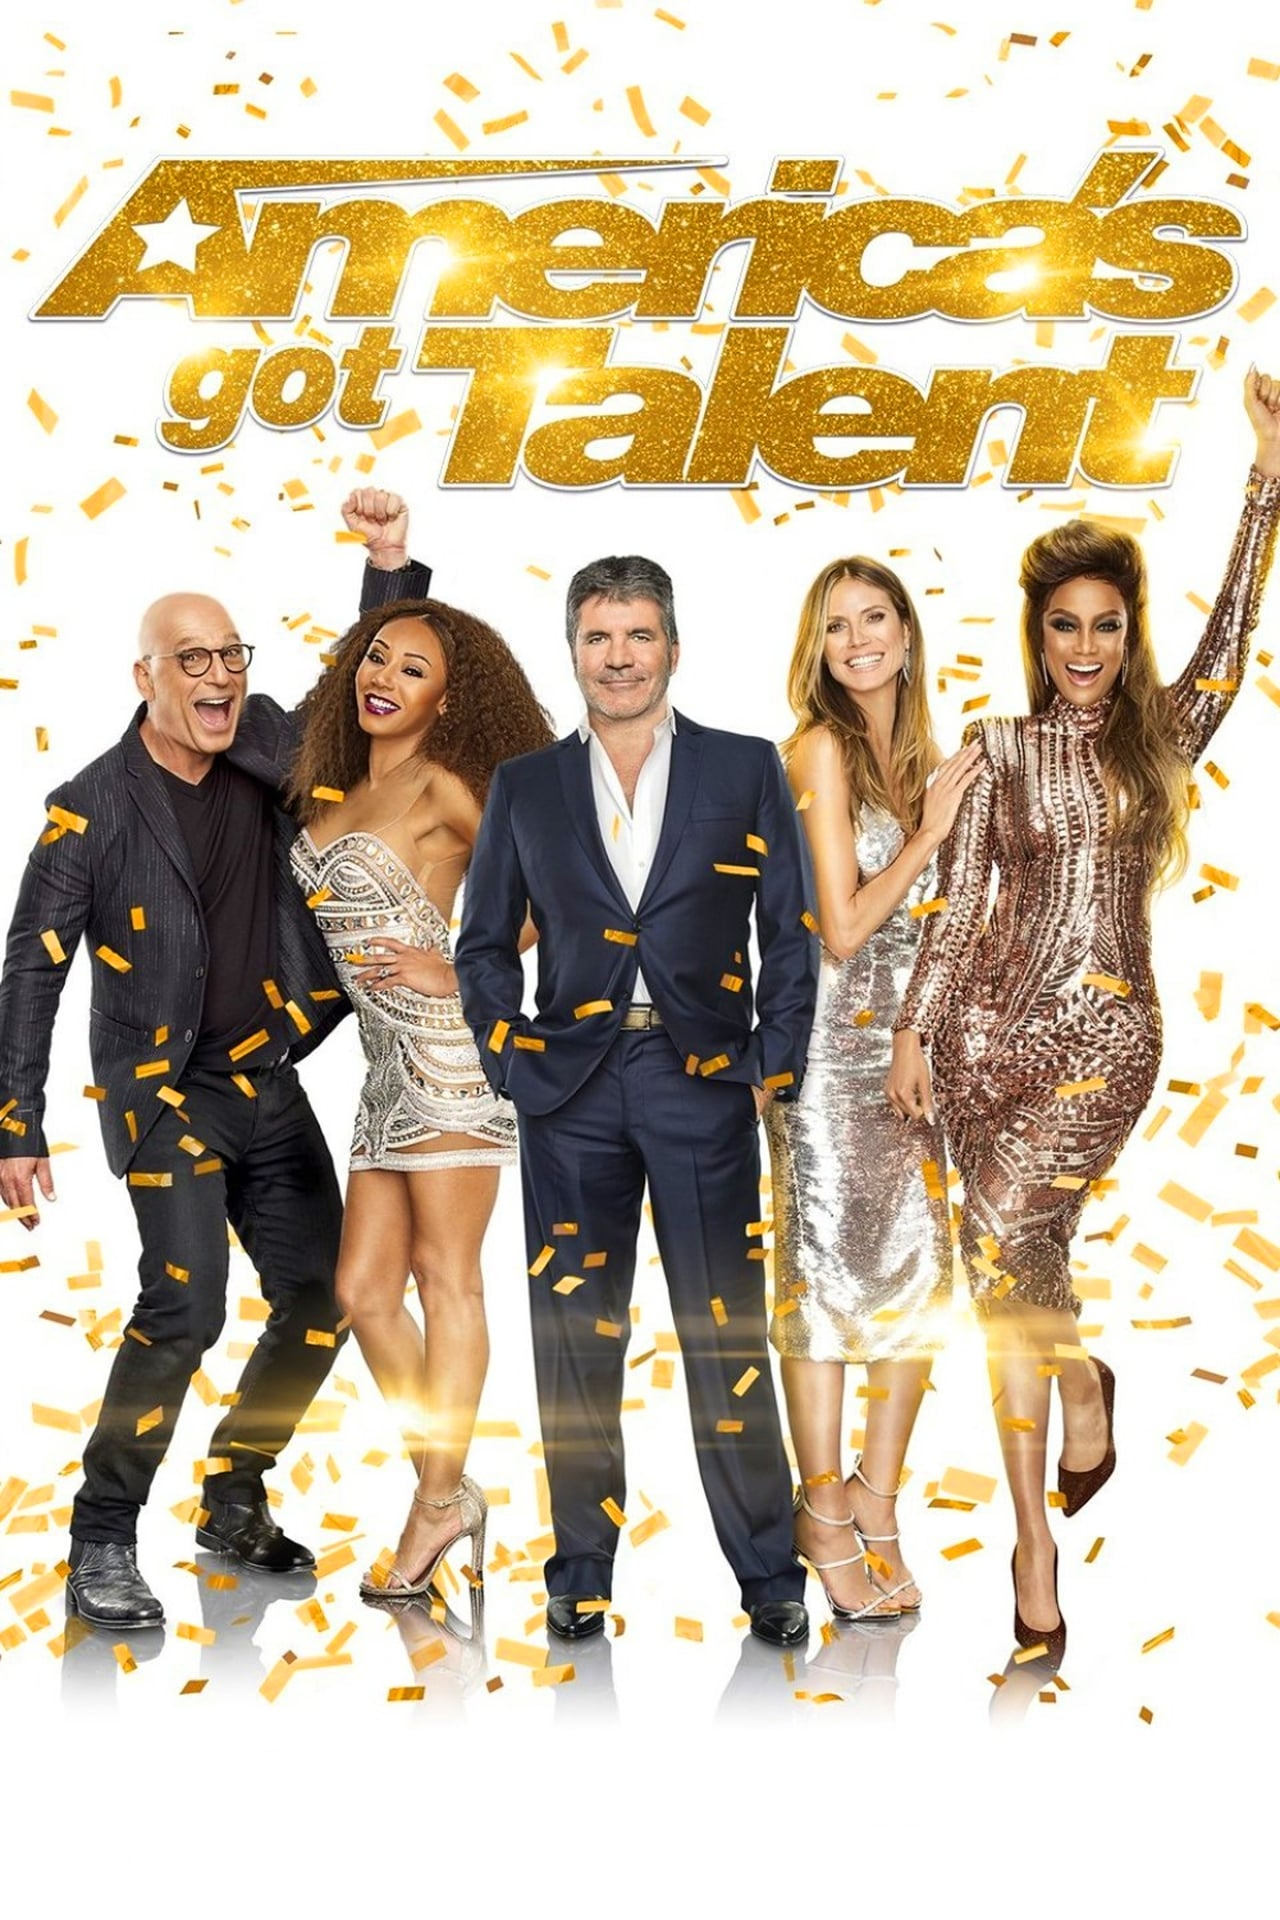 Putlocker America's Got Talent Season 12 (2017)